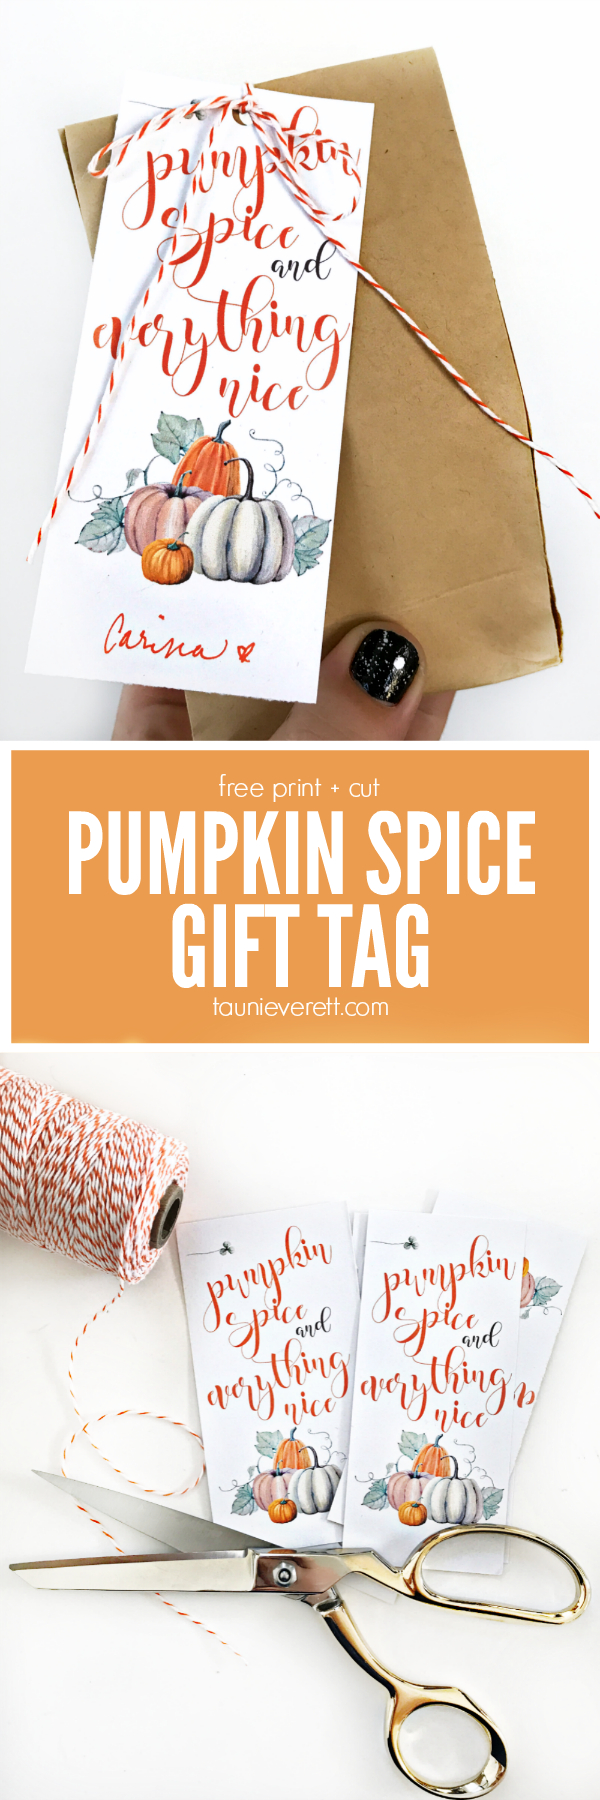 Pumpkin Spice And Everything Nice Gift Tag   Print - Turkey Day - Free Printable Pumpkin Gift Tags